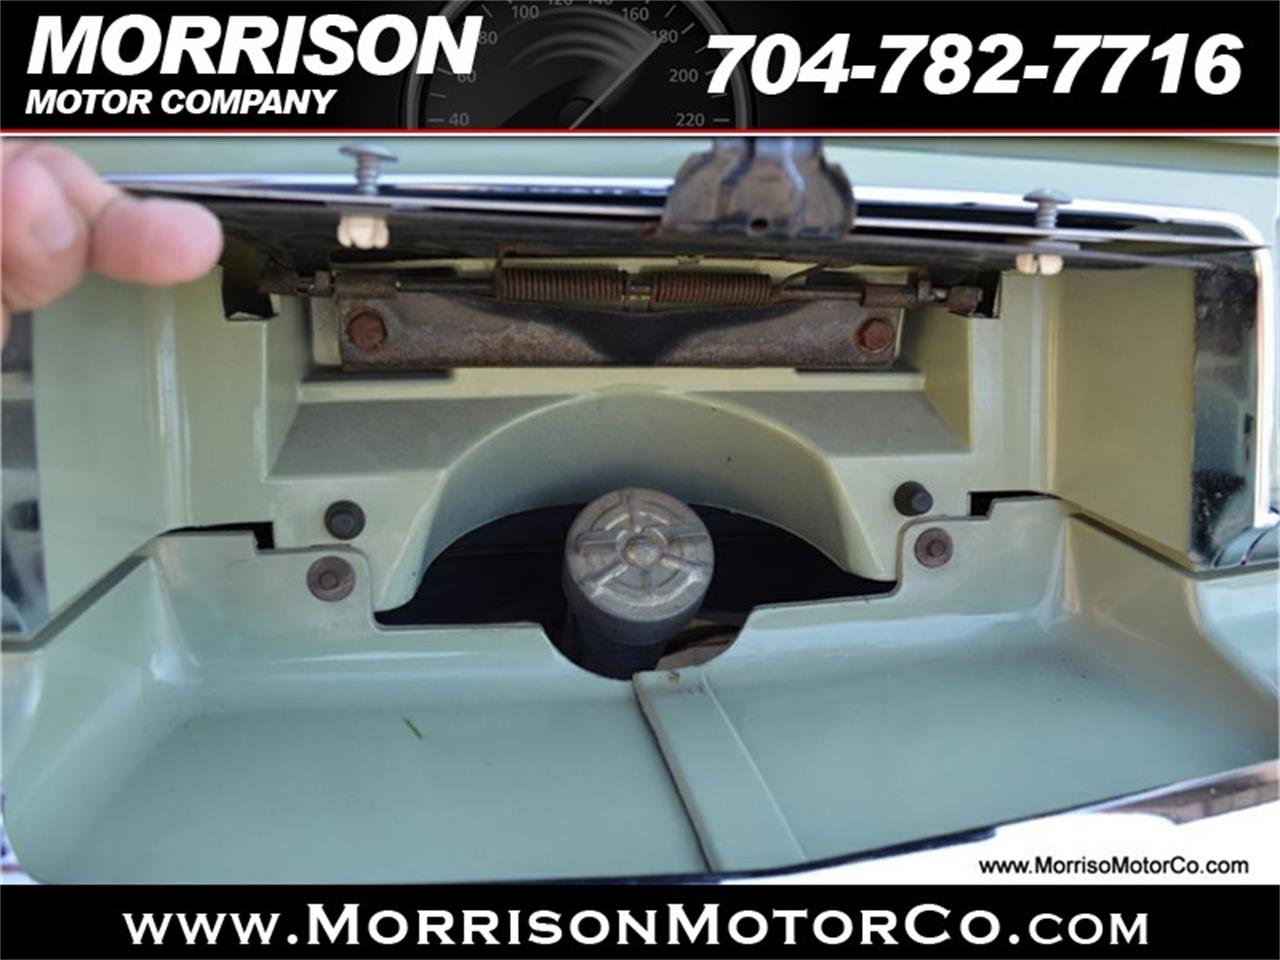 Large Picture of 1974 Chevrolet Monte Carlo Offered by Morrison Motor Company - PEZN